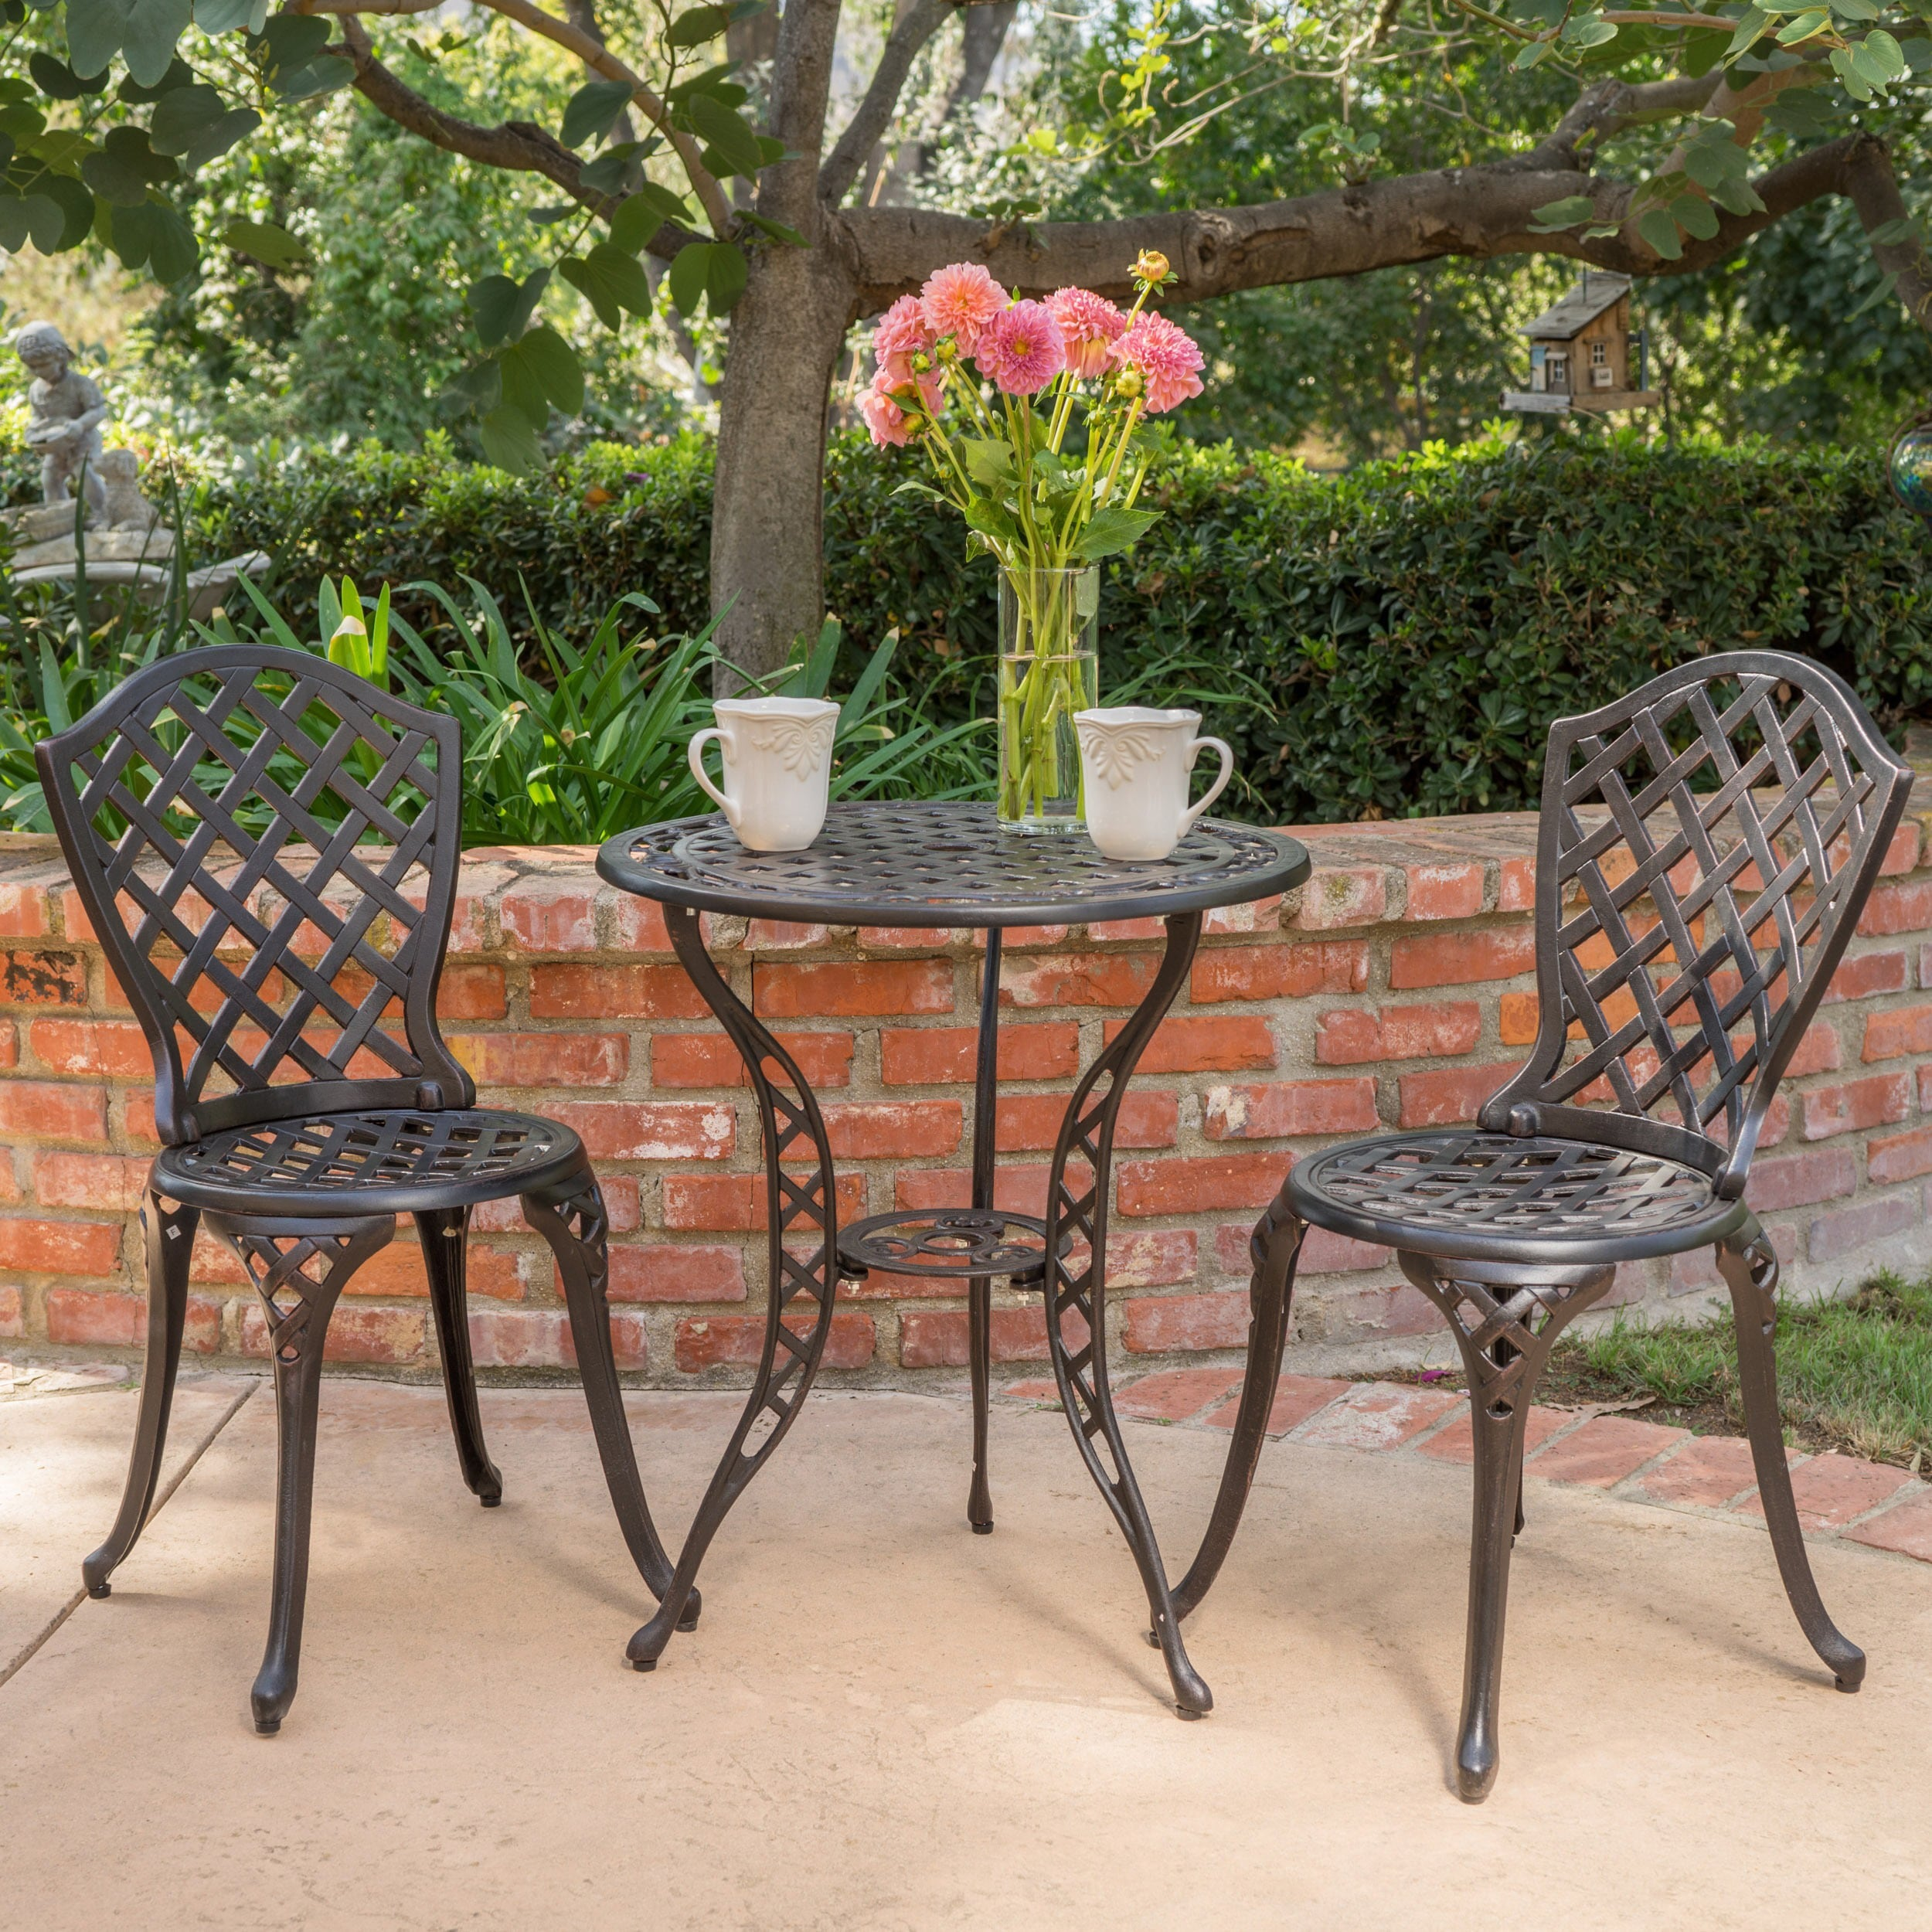 Outdoor Bistro Sets Online At Our Best Patio Furniture Deals